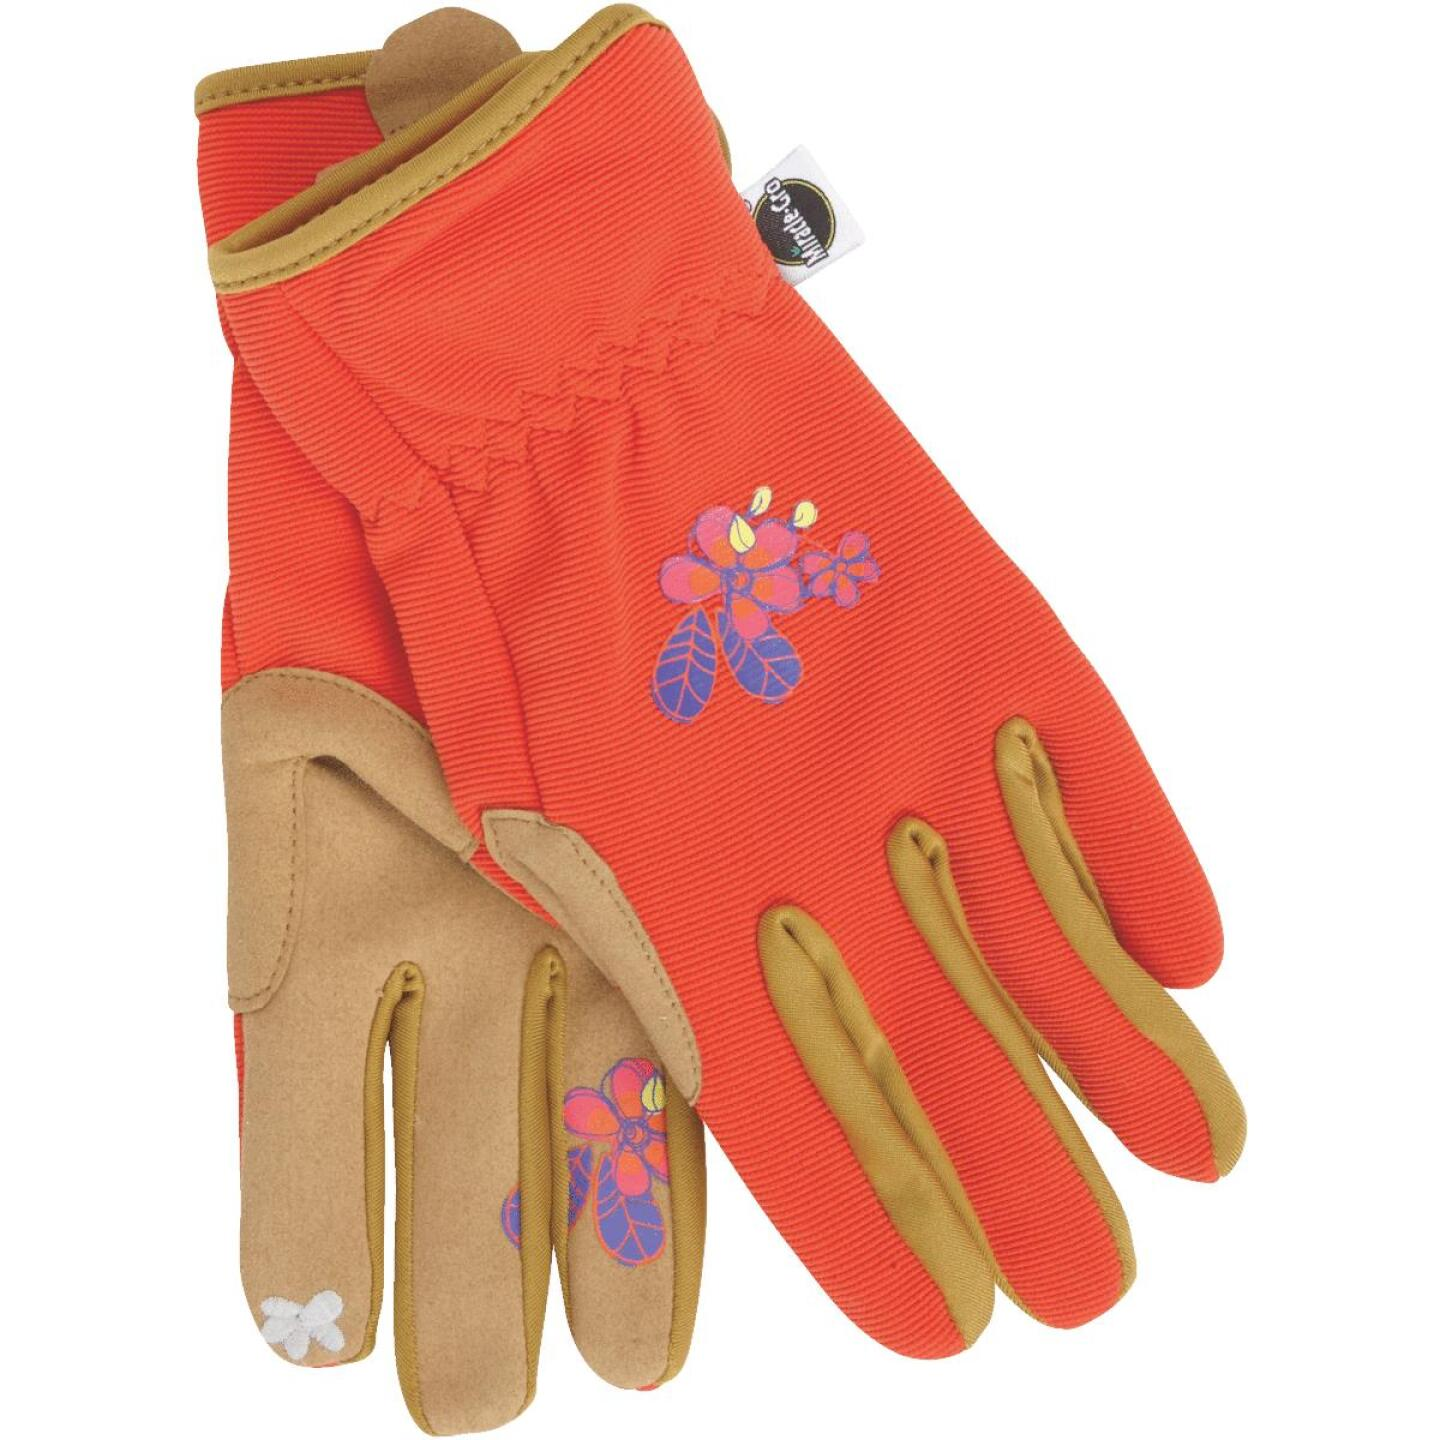 Miracle-Gro Women's Small/Medium Synthetic Leather Garden Glove Image 1